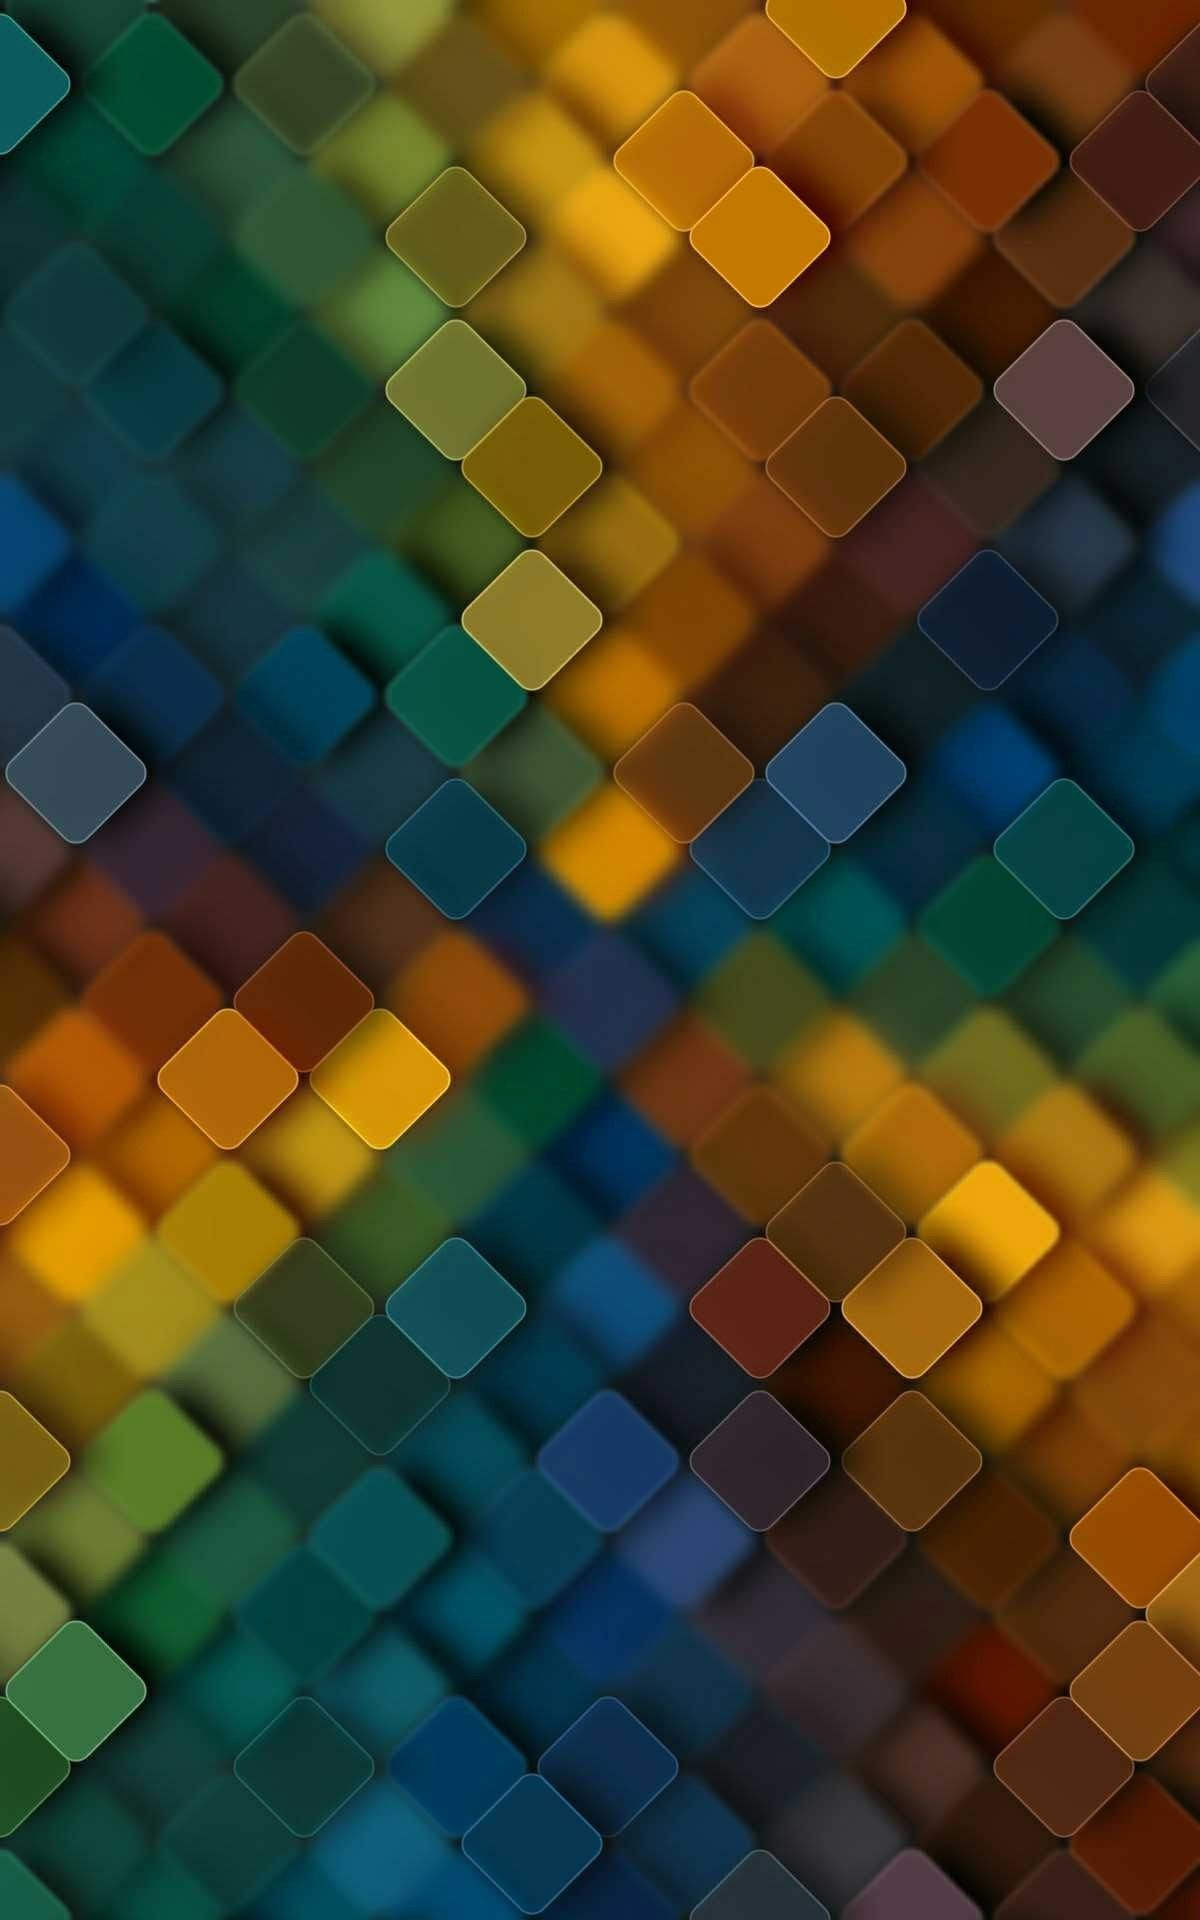 Color Scheme Block Wallpaper | *Abstract and Geometric Wallpapers | Qhd wallpaper, Cellphone ...